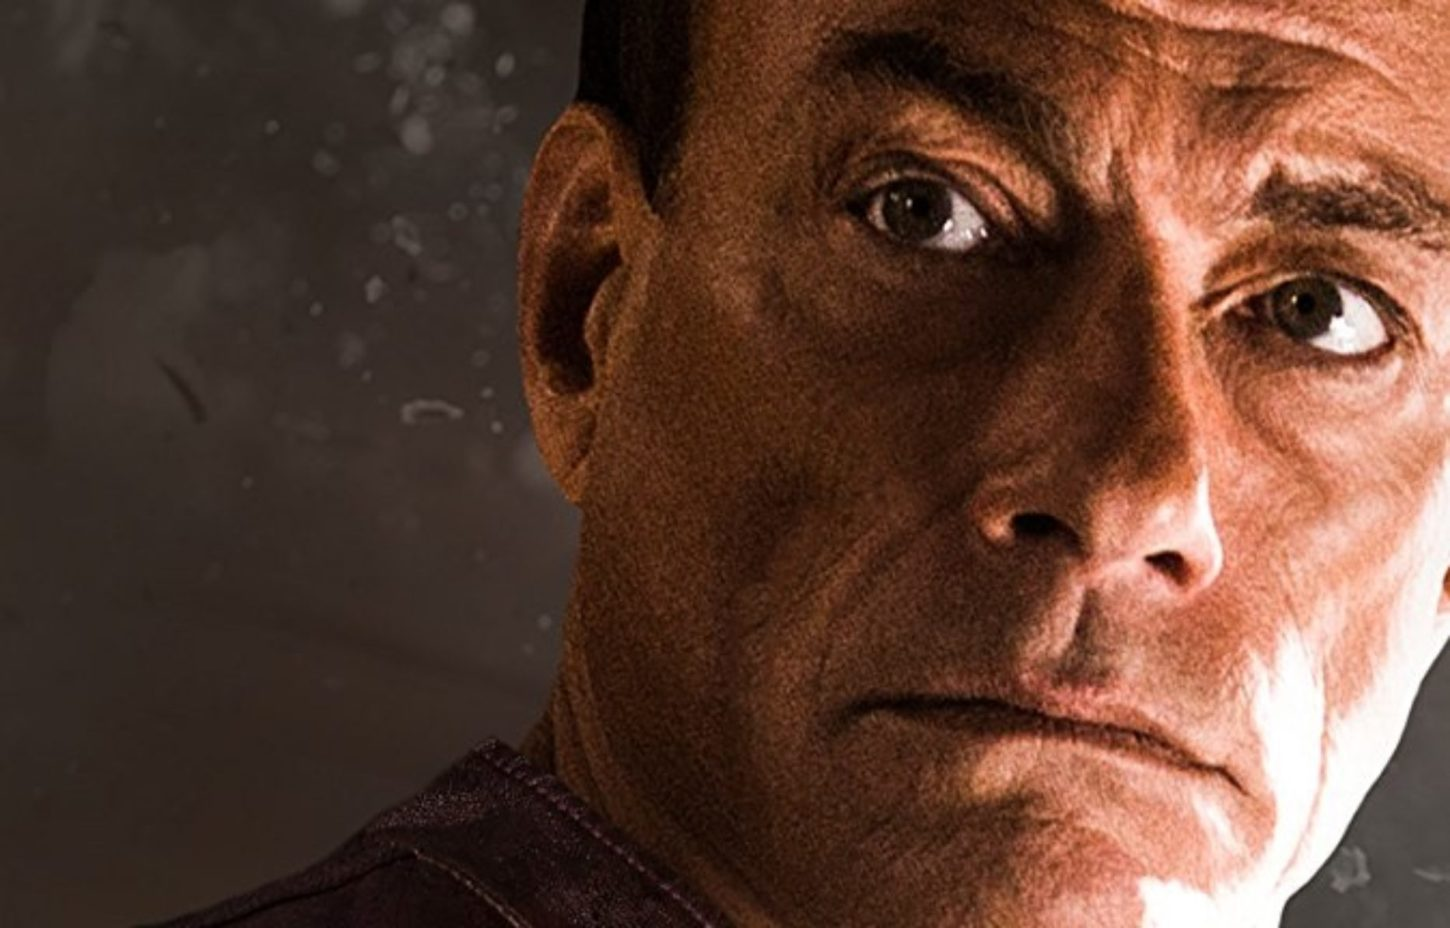 THE BOUNCER (LUKAS): JCVD Walks a Dark Path in the Teaser Trailer for His Upcoming Thriller